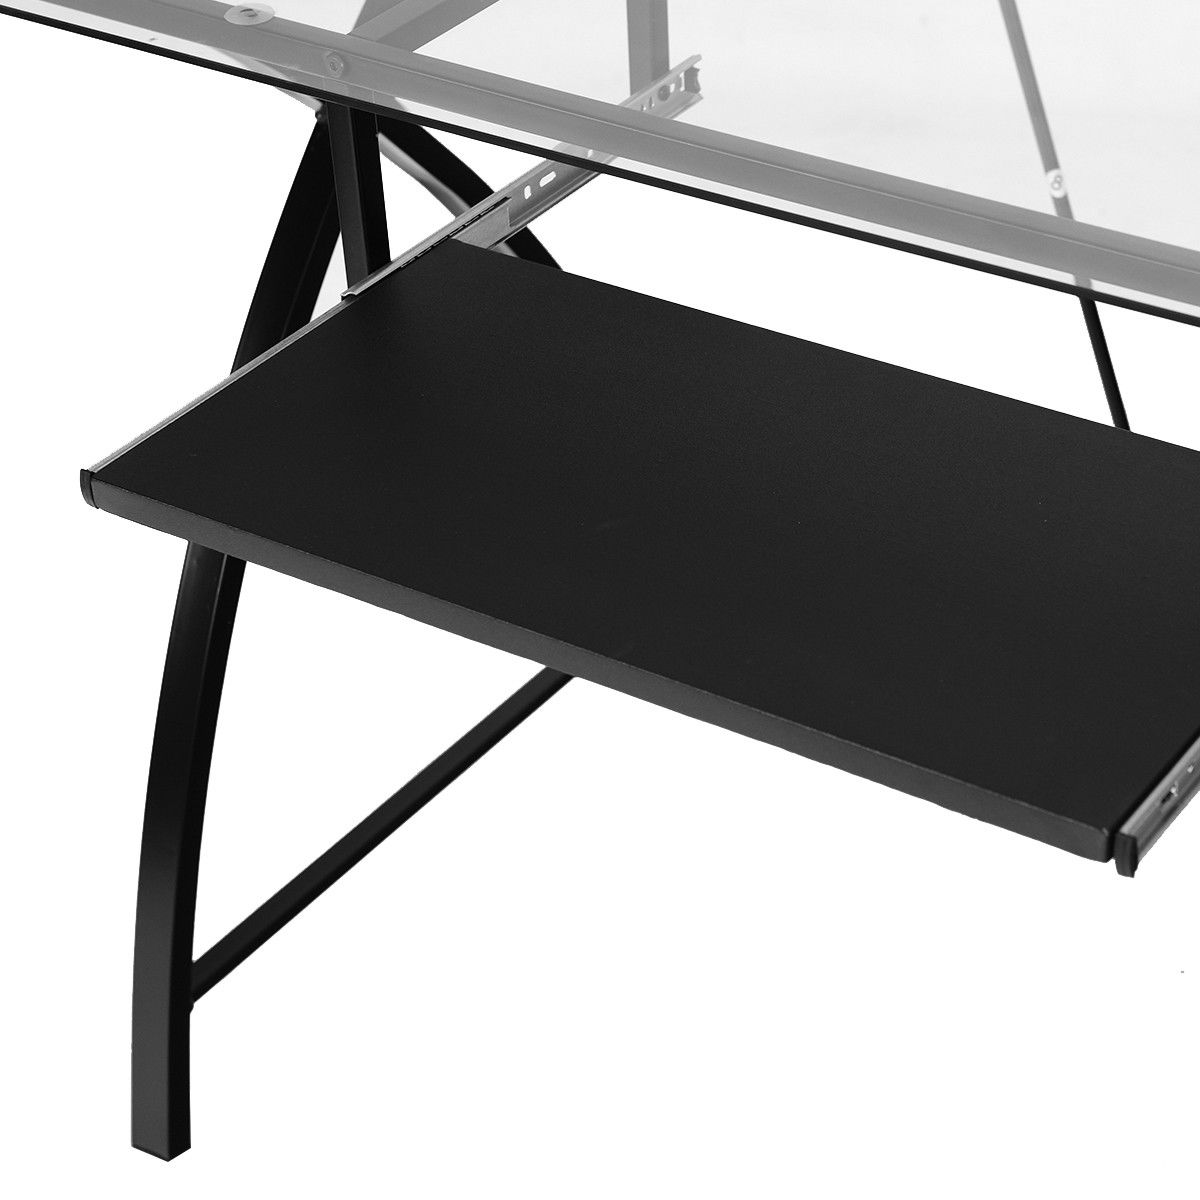 Costway: Costway Clear Glass Top Computer Desk W/ Pull-Out